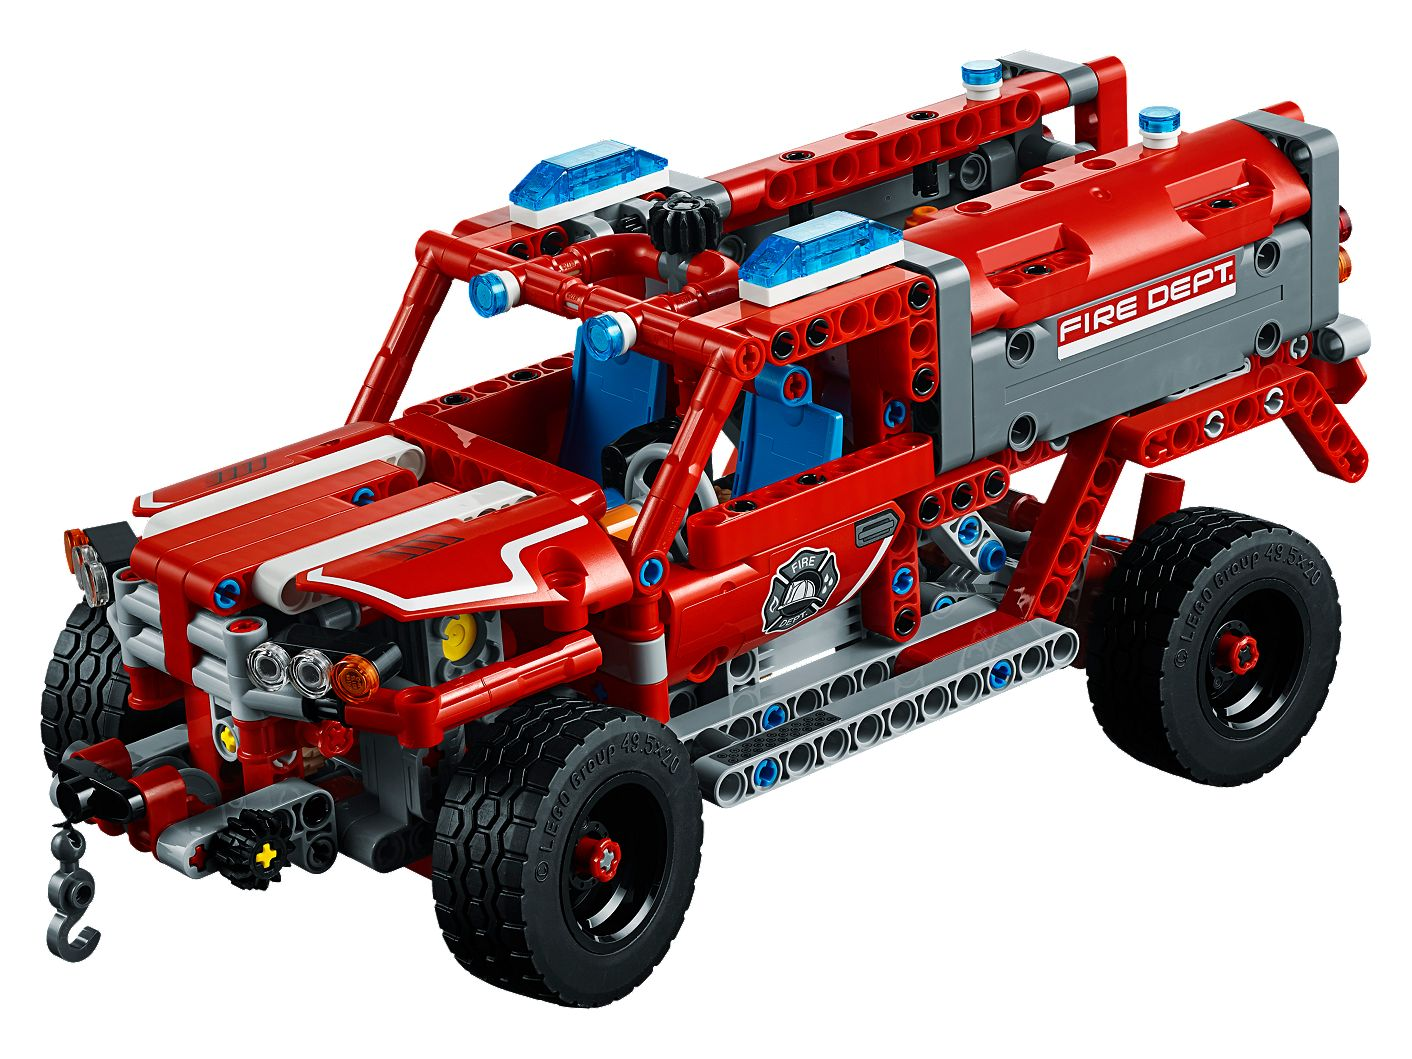 First Responder 42075 | Technic™ | Buy online at the Official LEGO® Shop US